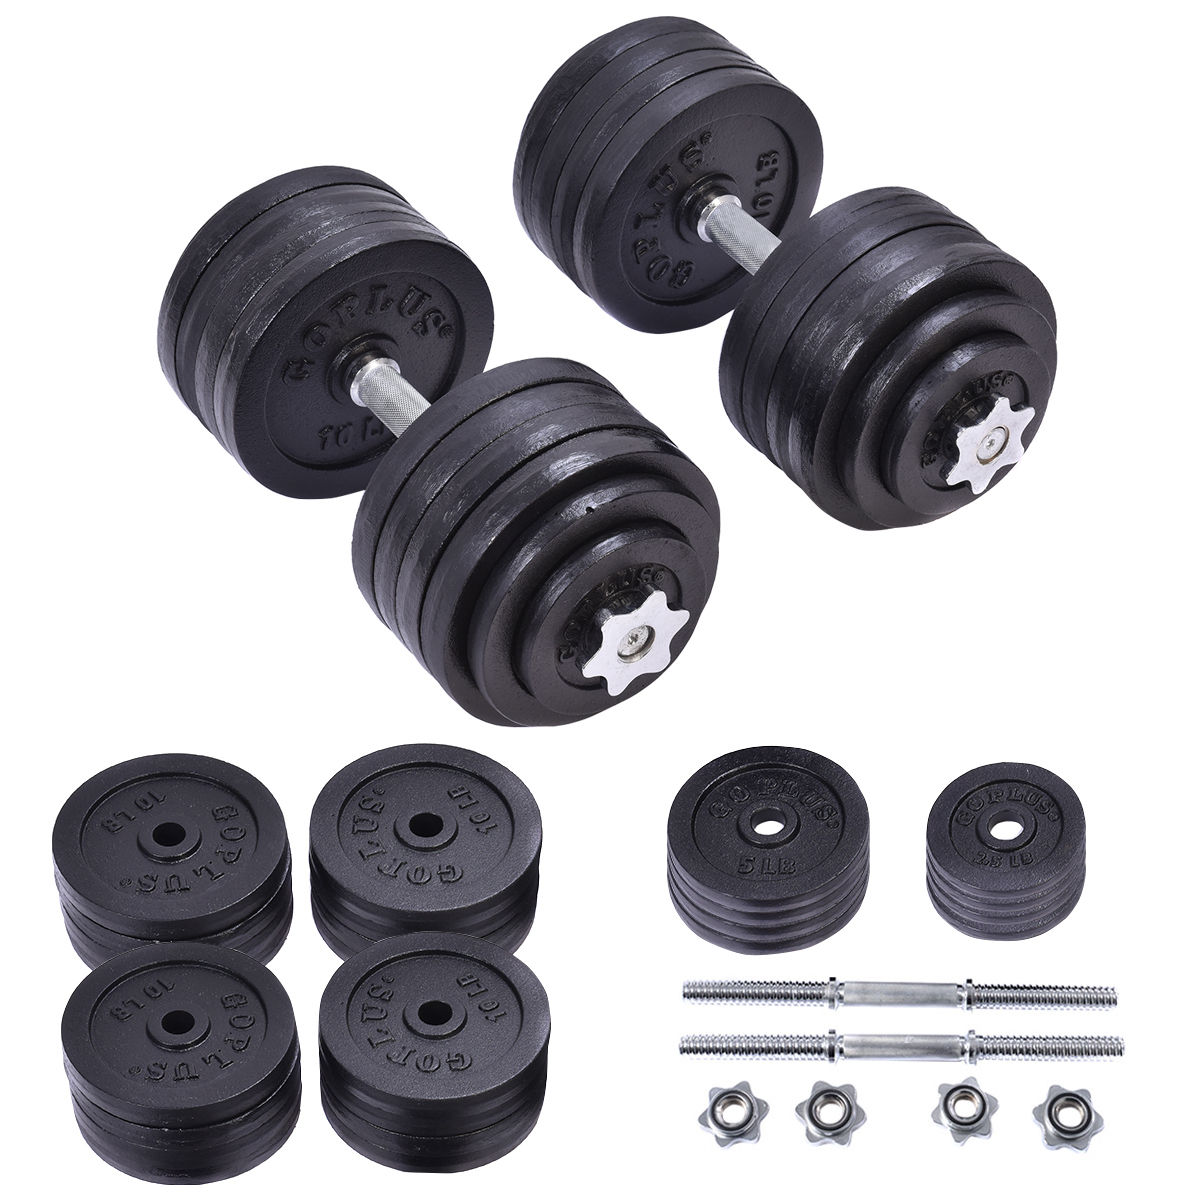 Costway 200 LB Weight Dumbbell Set Adjustable Cap Gym Barbell Plates Body Workout by Costway